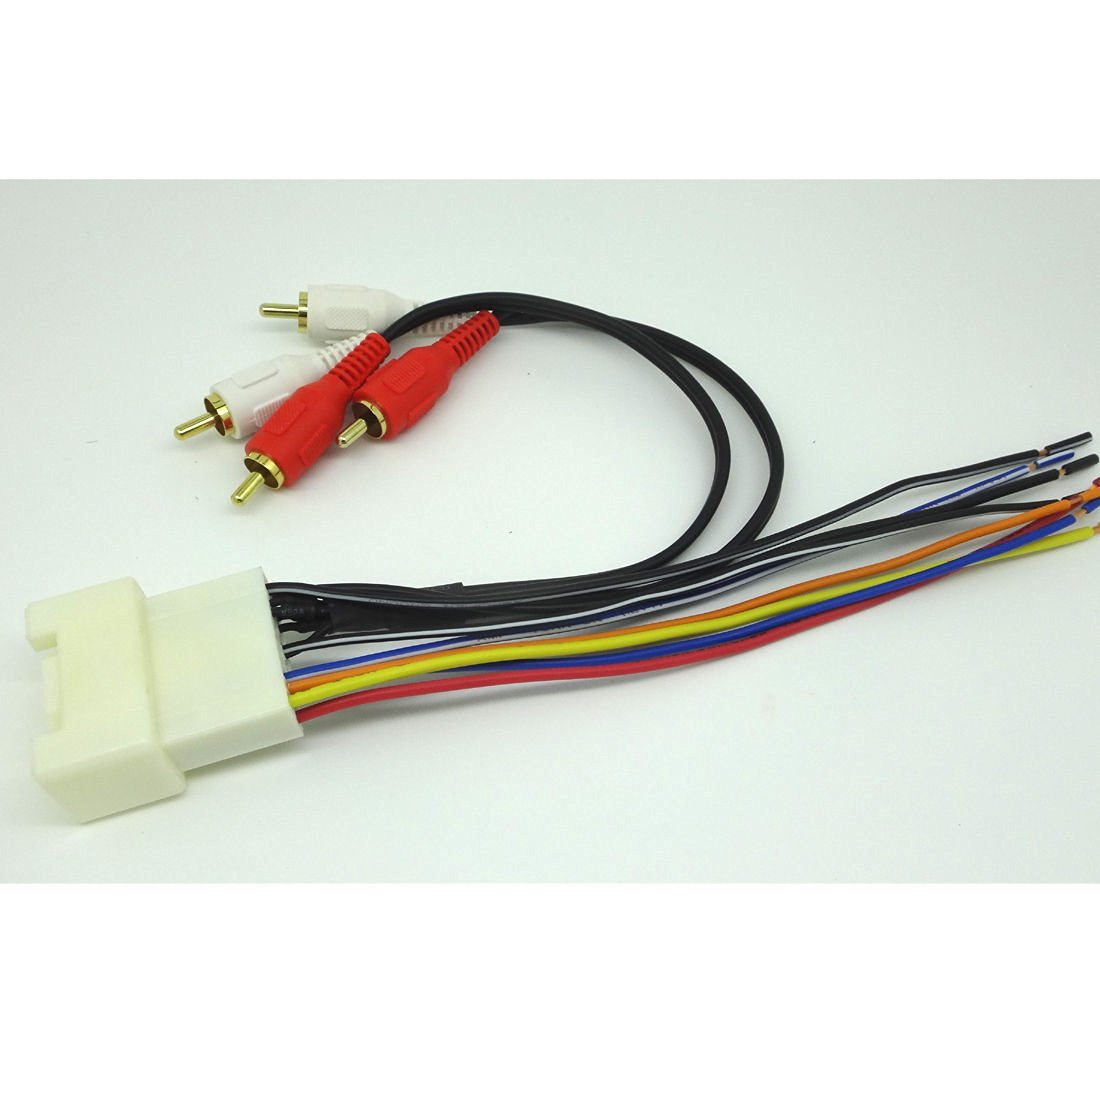 Cheap Toyota Yaris Wiring Harness Find. Get Quotations Premium Sound System W Integration Car Stereo Radio Factory Wiring Harness 2000 2004 Toyota. Toyota. 1982 Toyota Camry Factory Radio Plug Wiring At Scoala.co